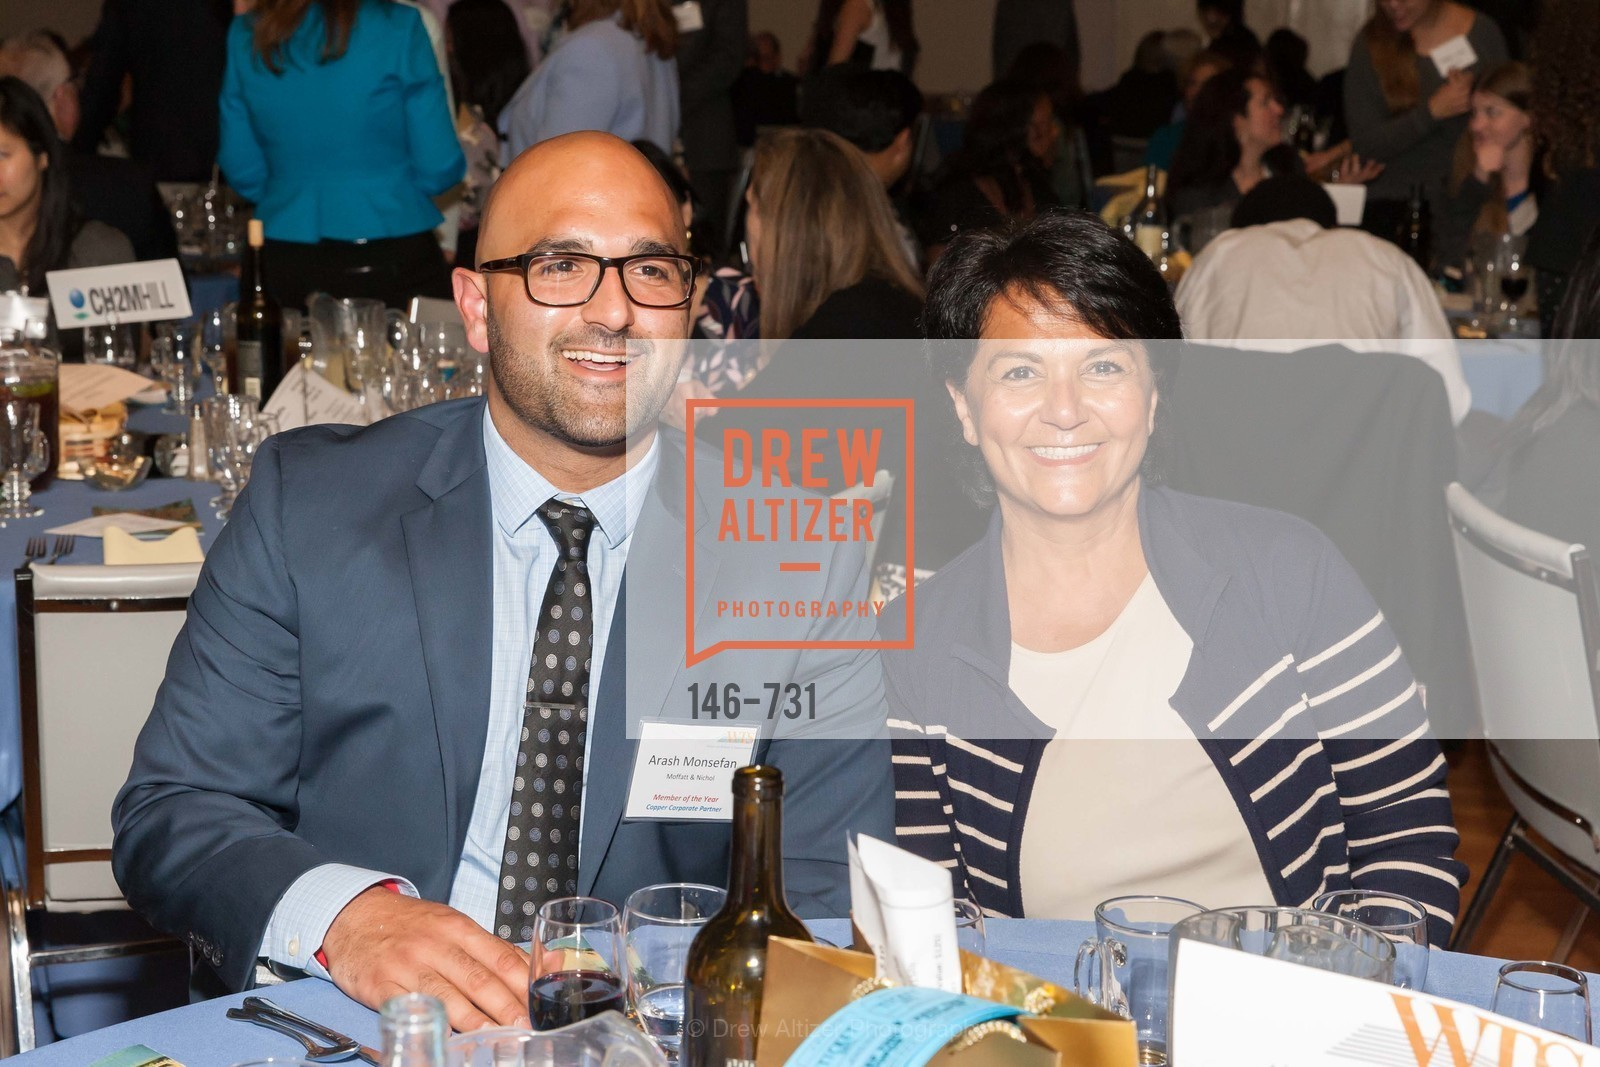 Arash Monsefan, Olga Mendez, WOMEN'S TRANSPORTATION SEMINAR SF Bay Area Chapter Annual Scholarship Awards, US, May 14th, 2015,Drew Altizer, Drew Altizer Photography, full-service agency, private events, San Francisco photographer, photographer california